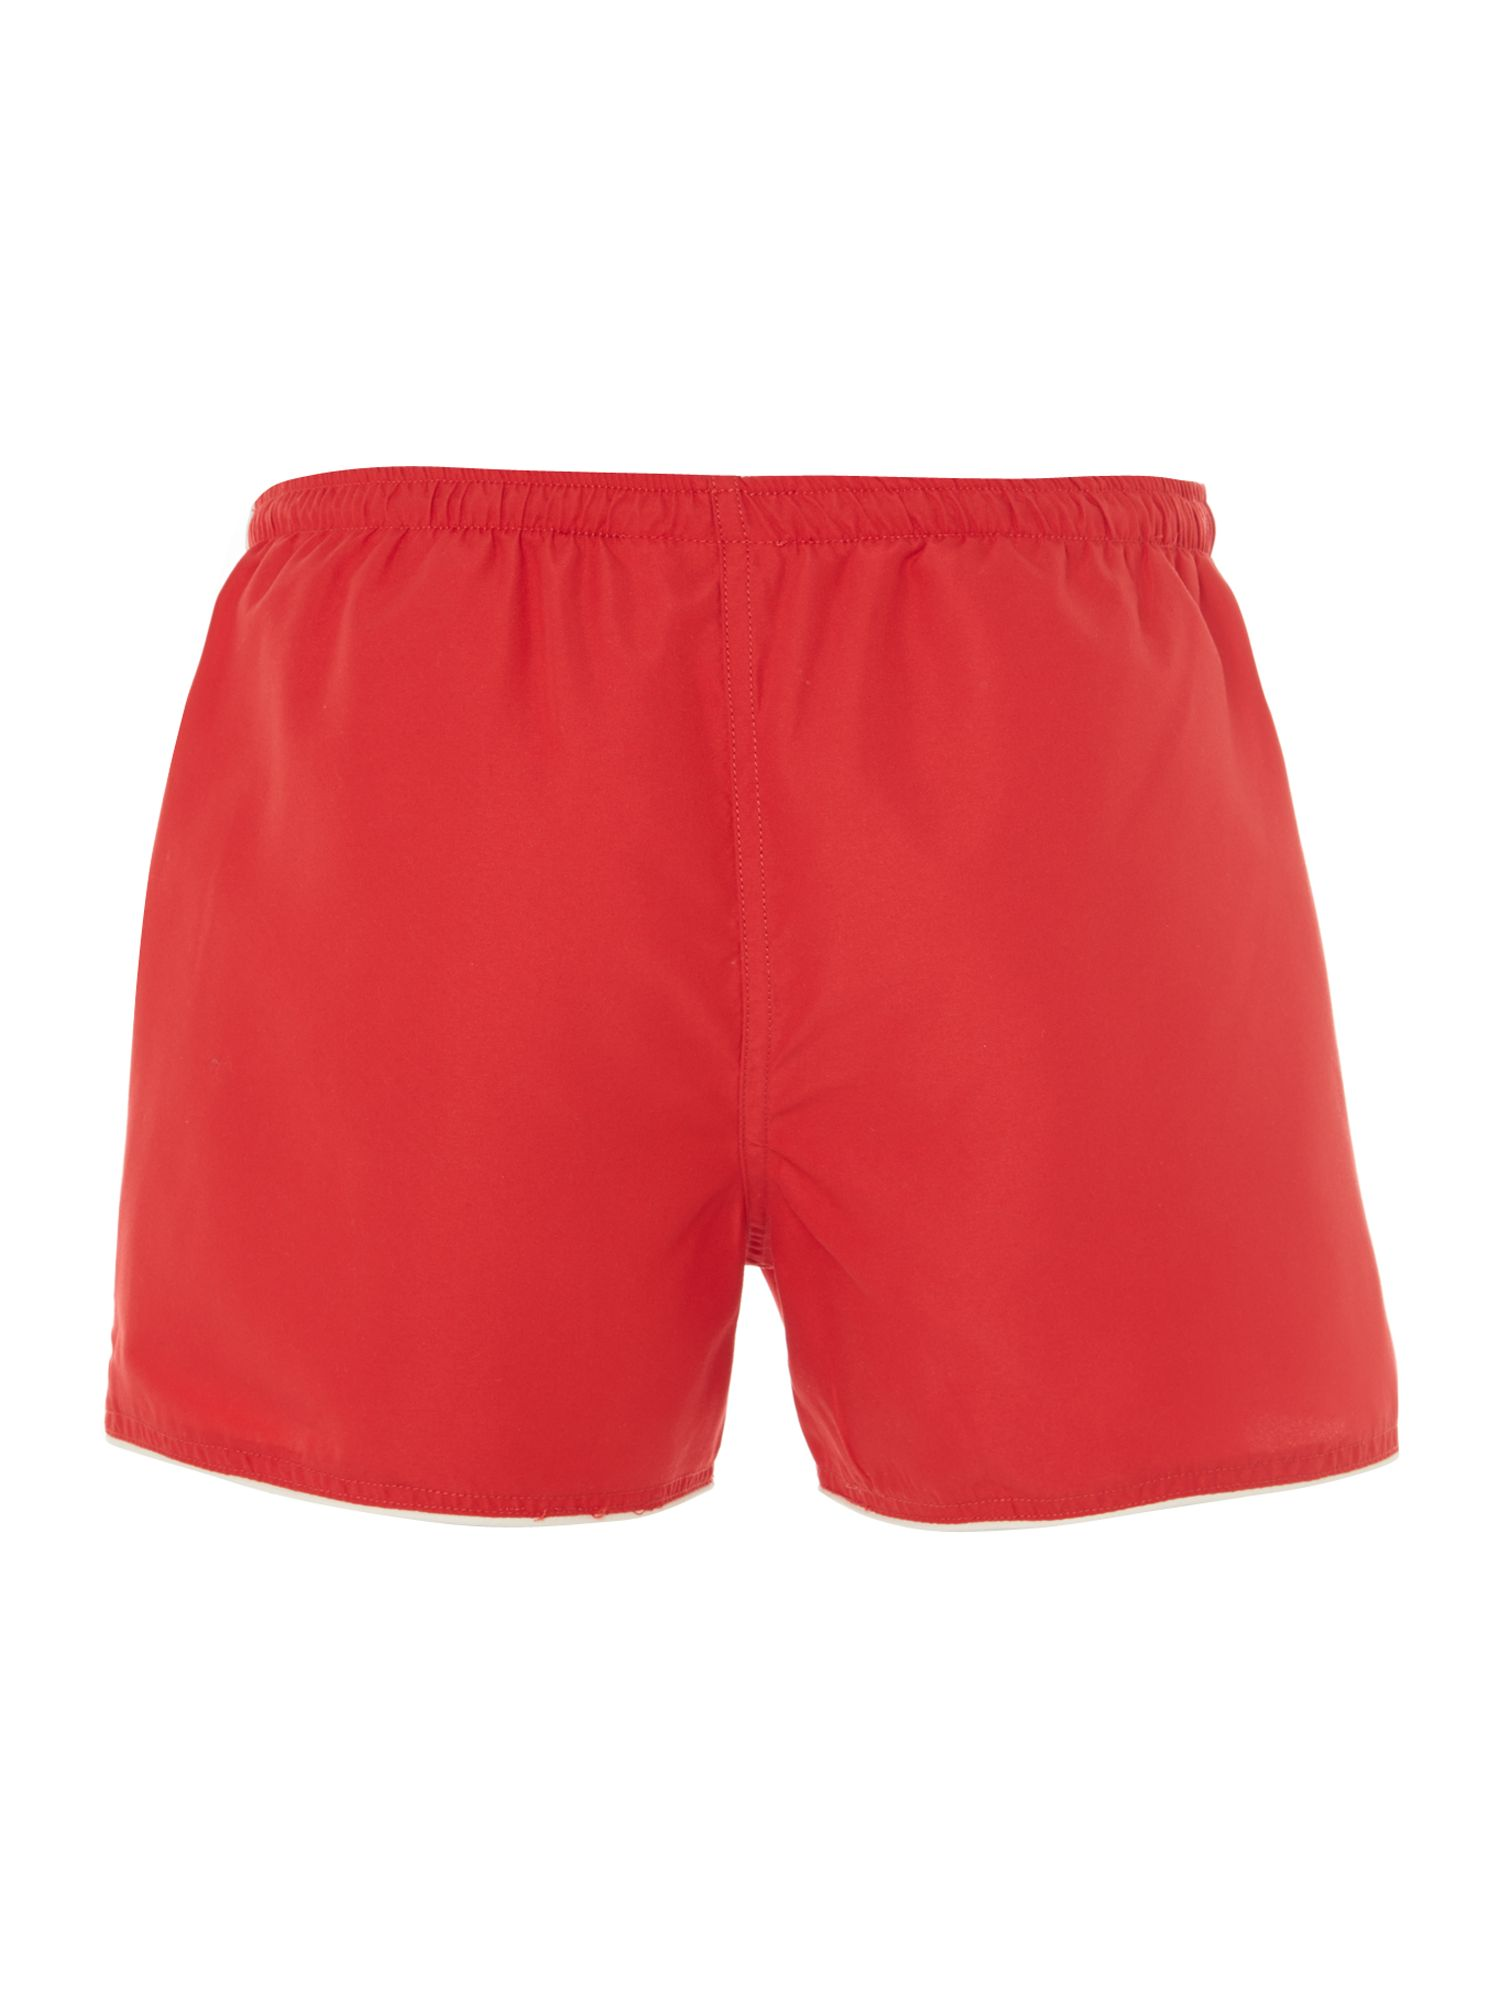 East hampton swim shorts